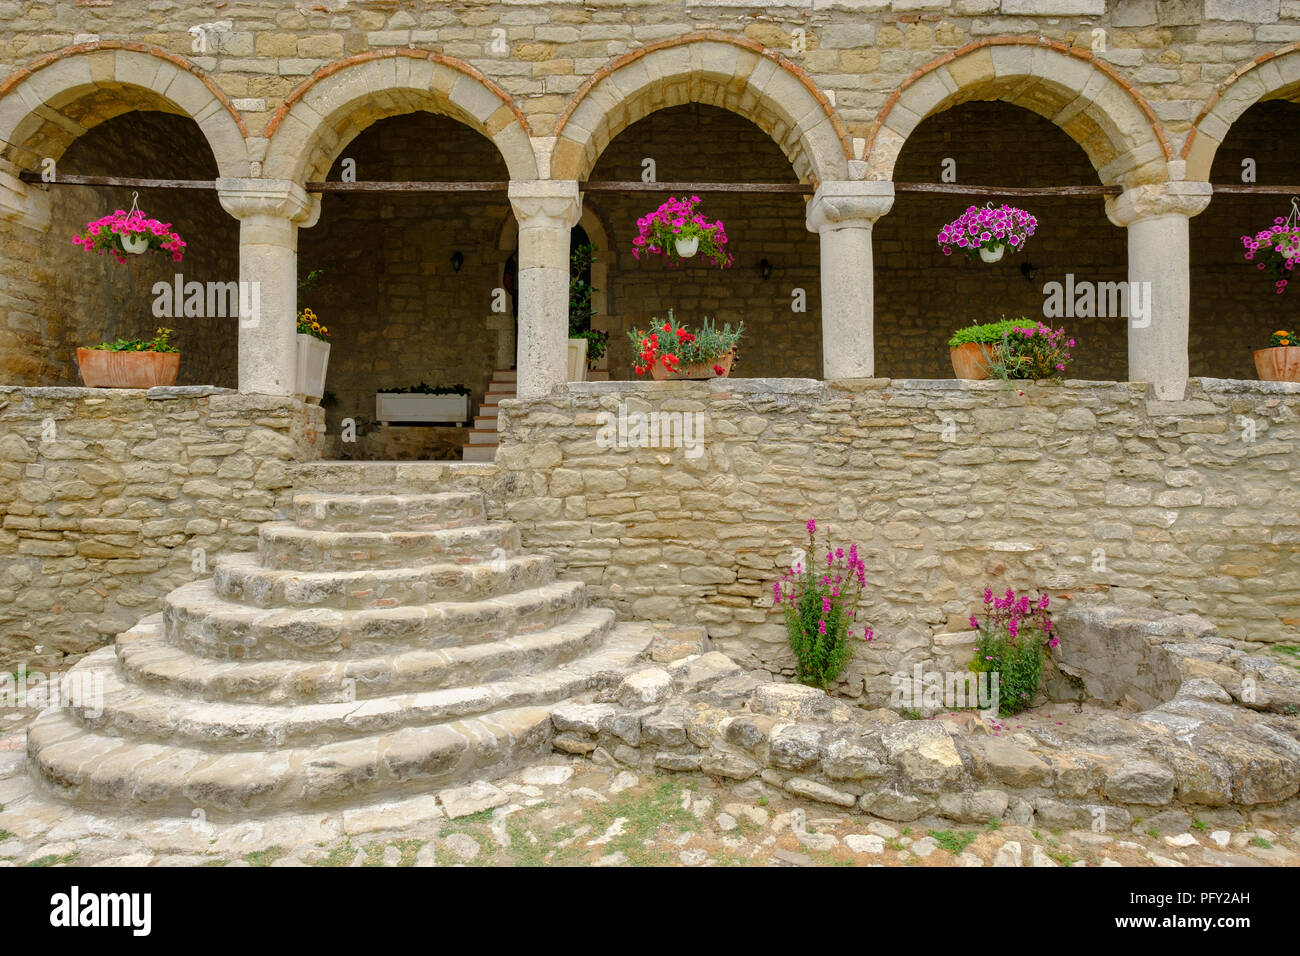 Portico in front of St. Mary's Church, Orthodox monastery Ardenica, Qar Fier, Albania - Stock Image